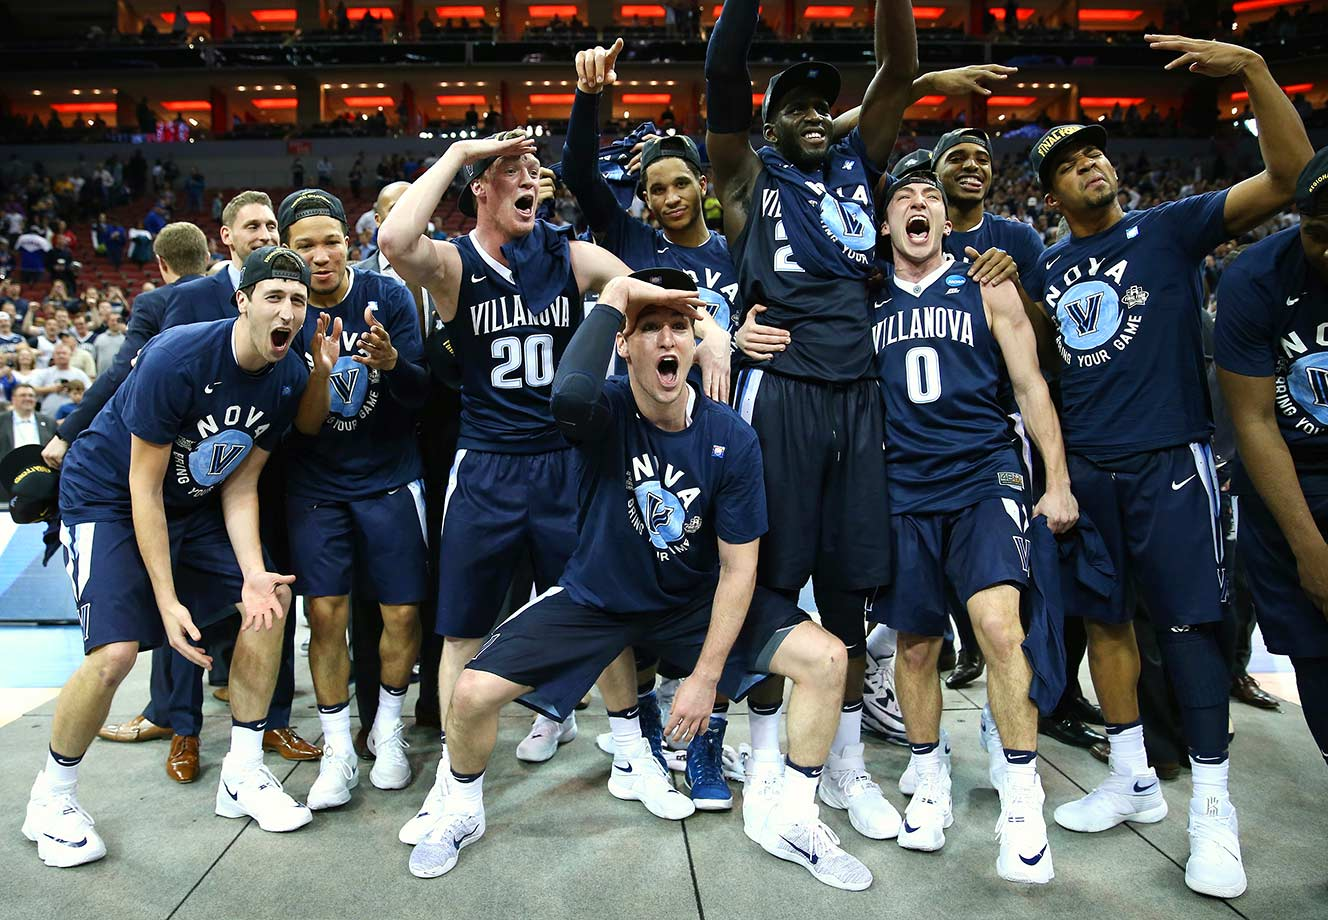 Villanova players celebrate after defeating Kansas 64-59 in Louisville, Ky.